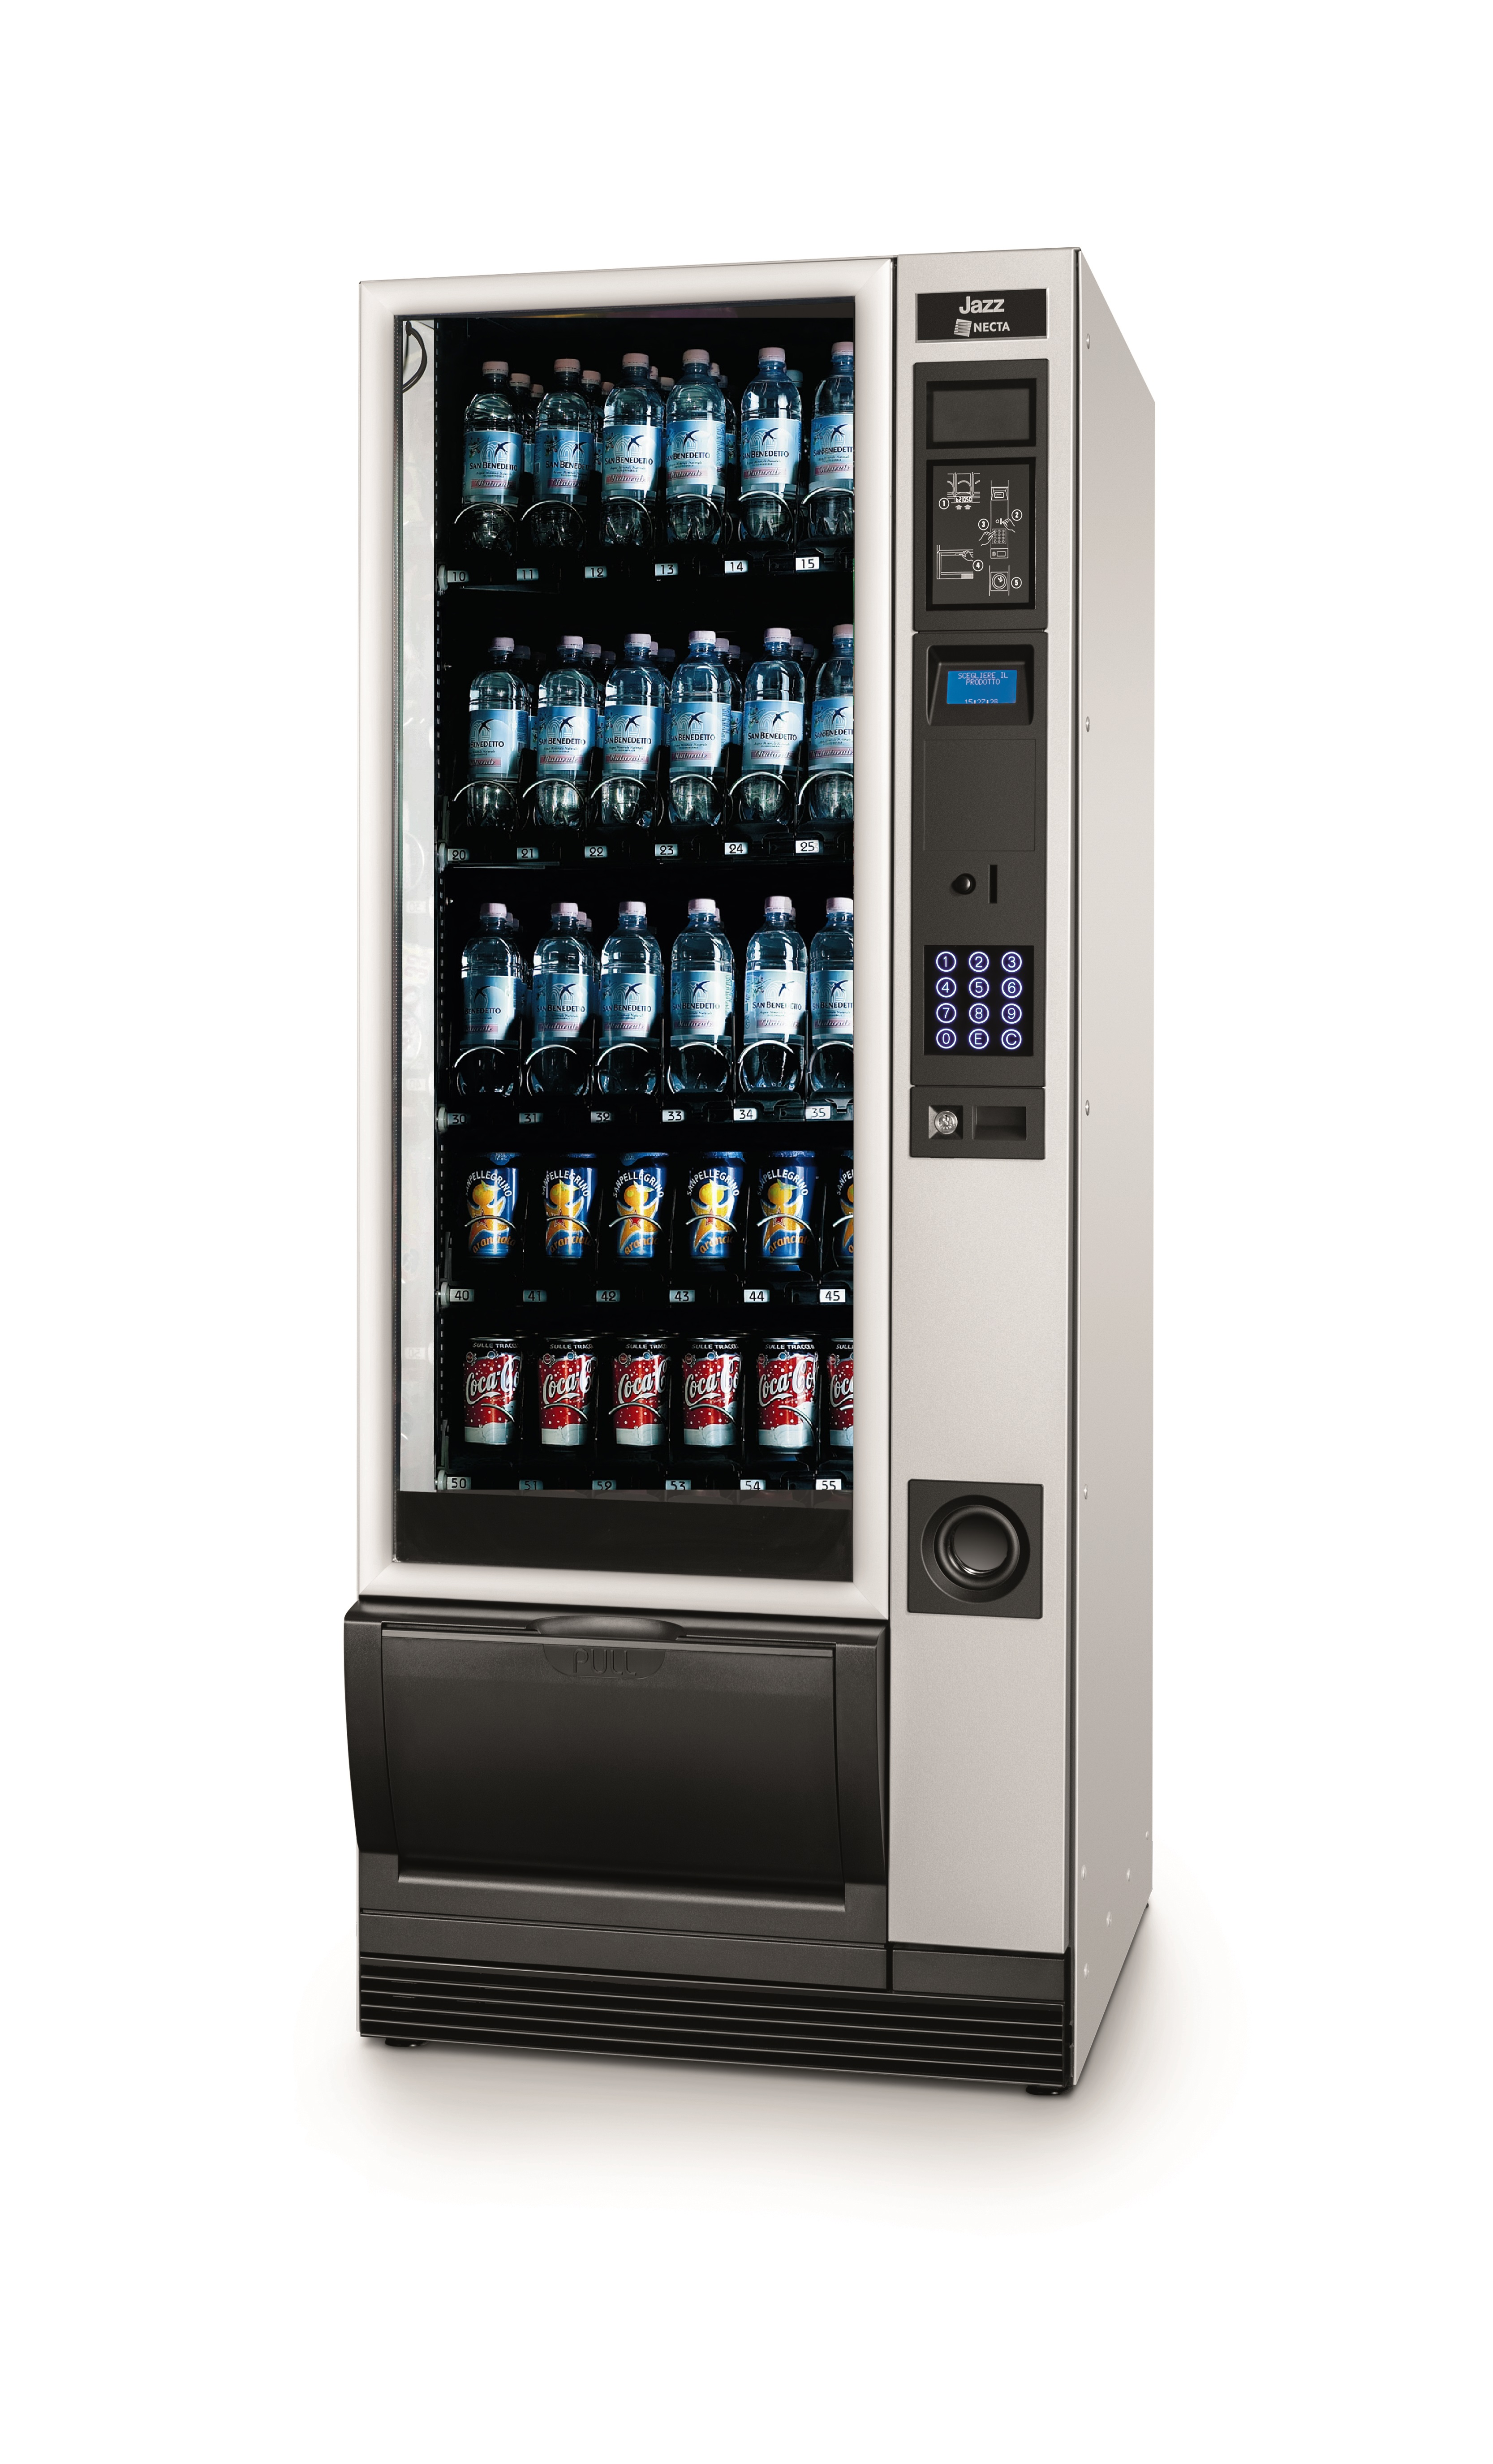 Jazz compact complete vending machine